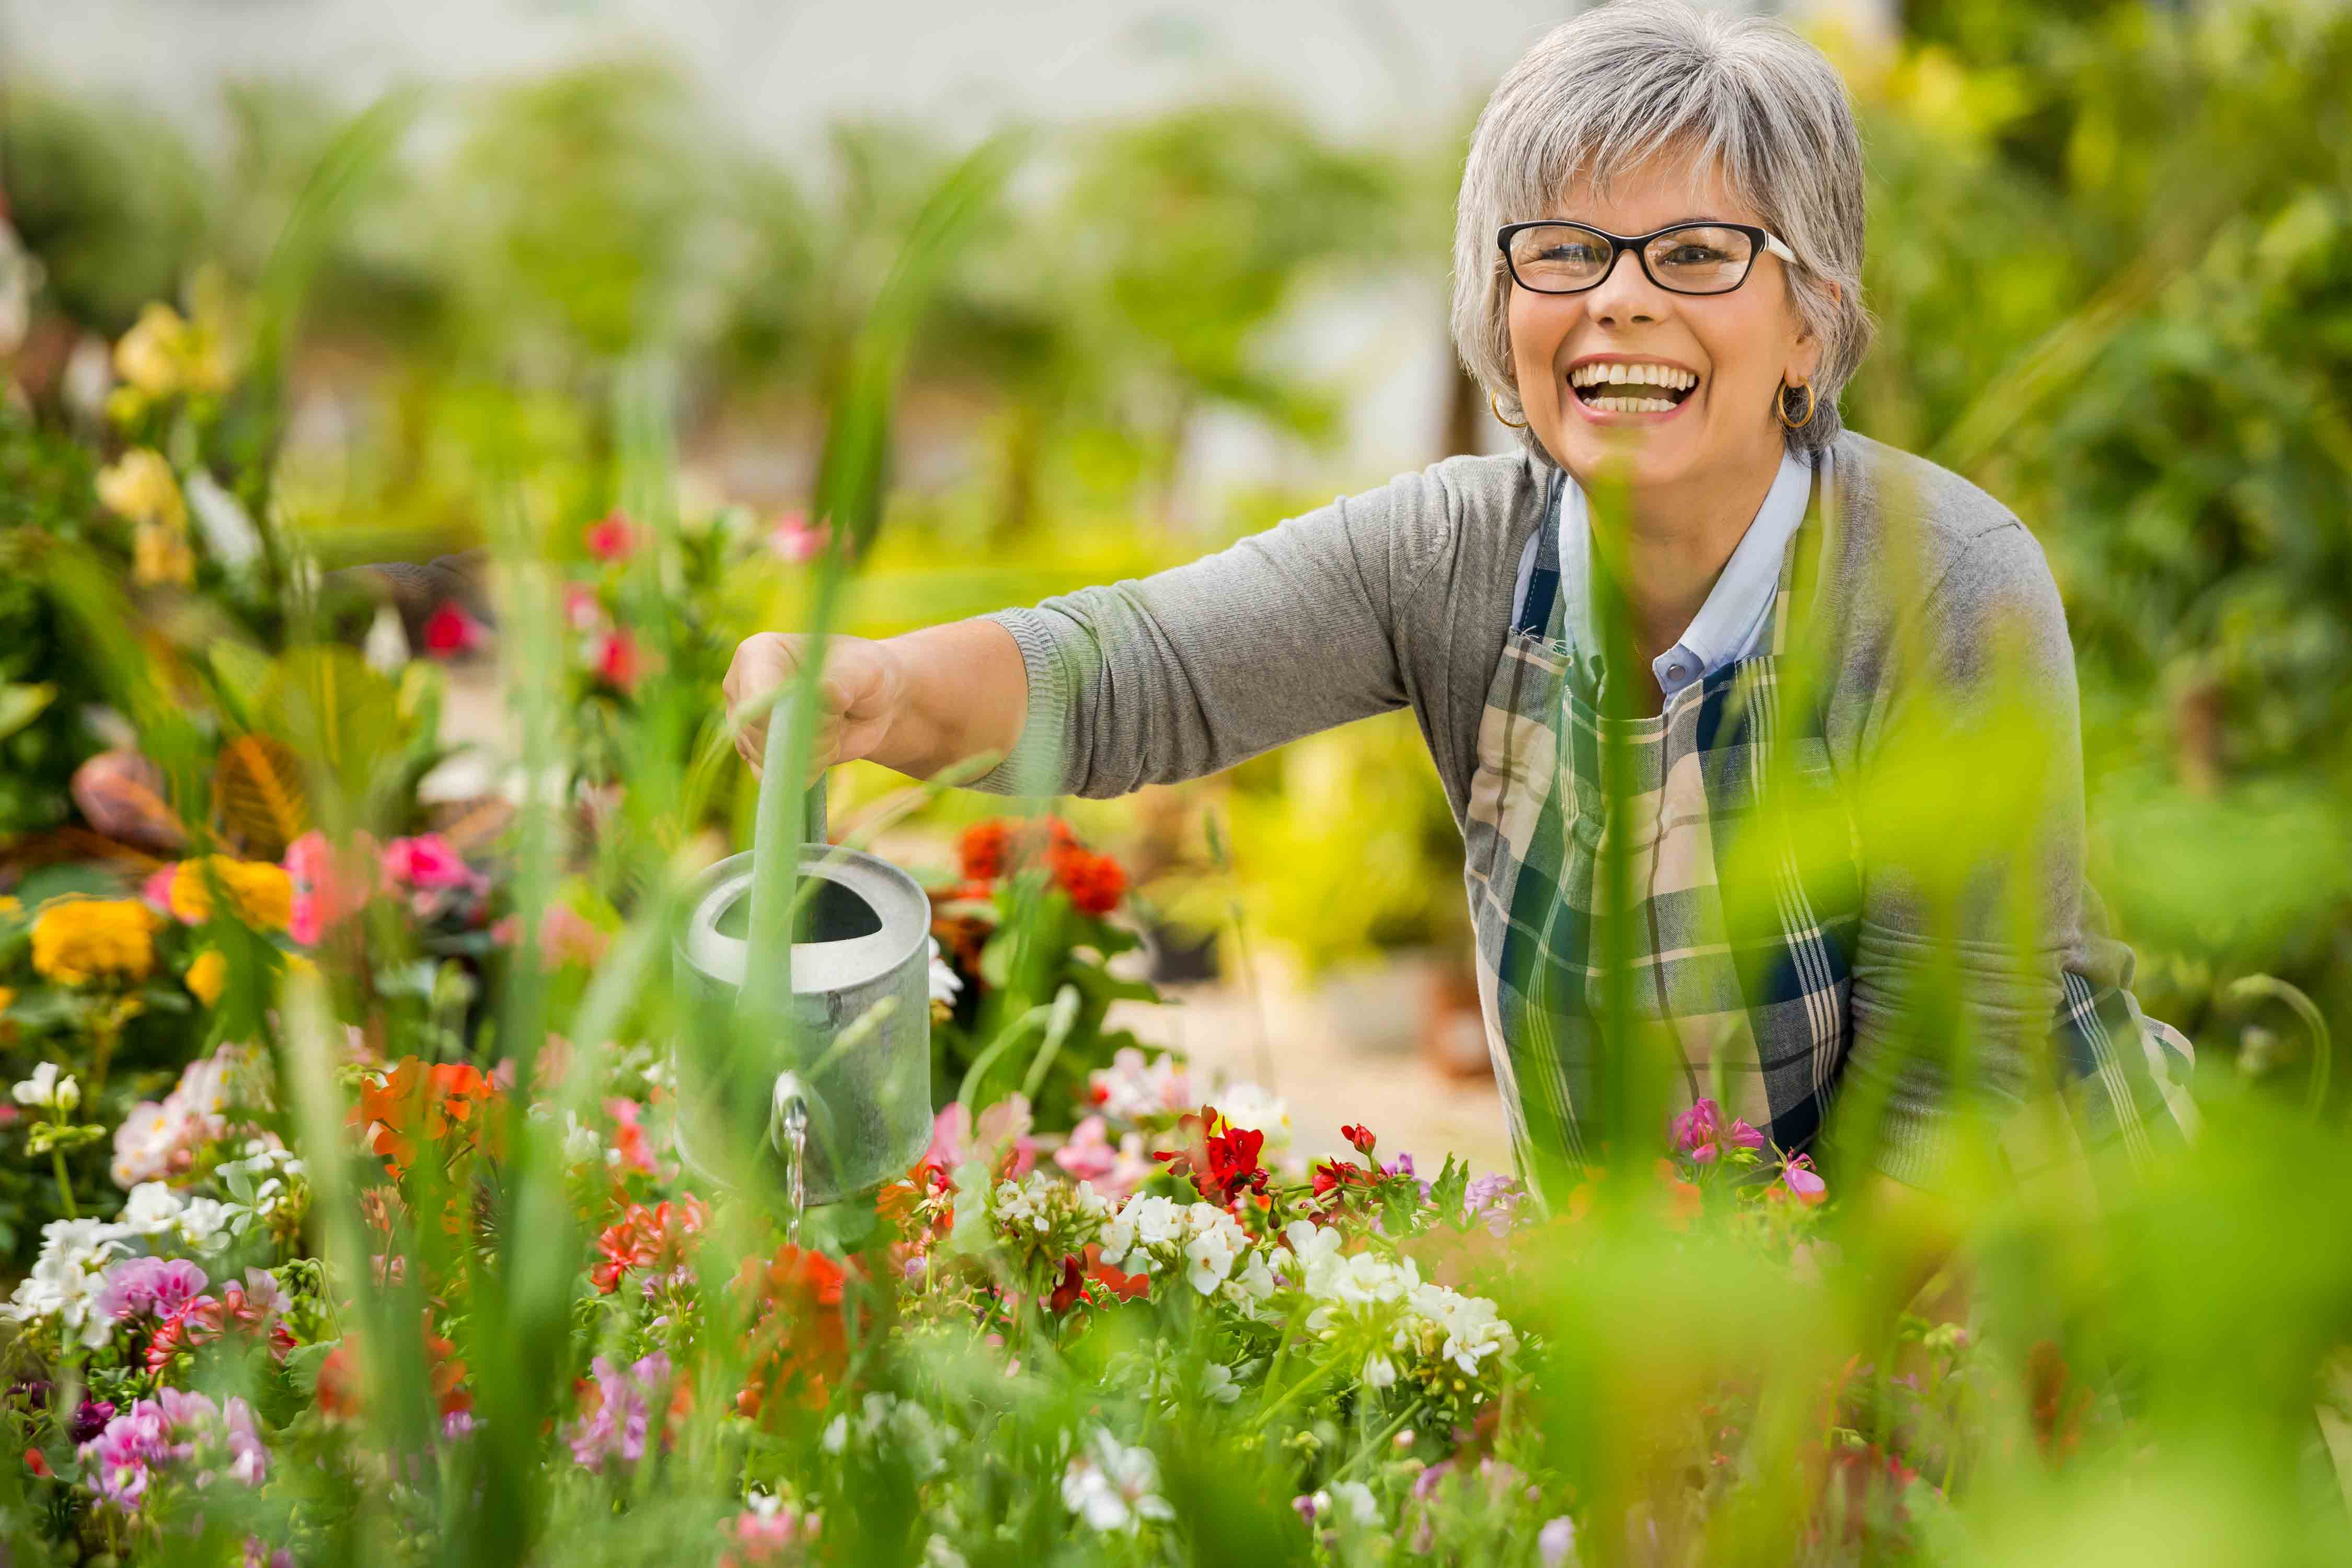 Smiling woman watering colorful flowers in her garden